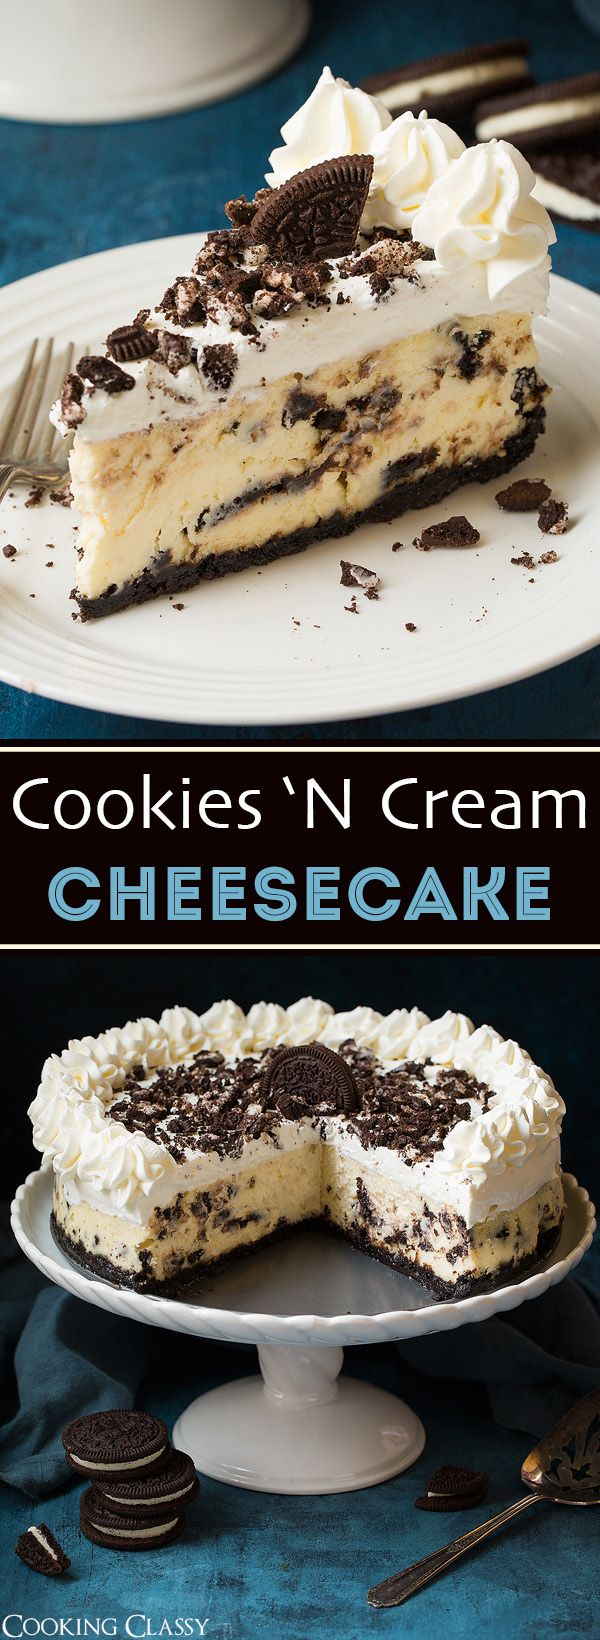 Oreo Cheesecake (Always a Crowd Favorite!) - Cooking Classy #cheesecakerecipes